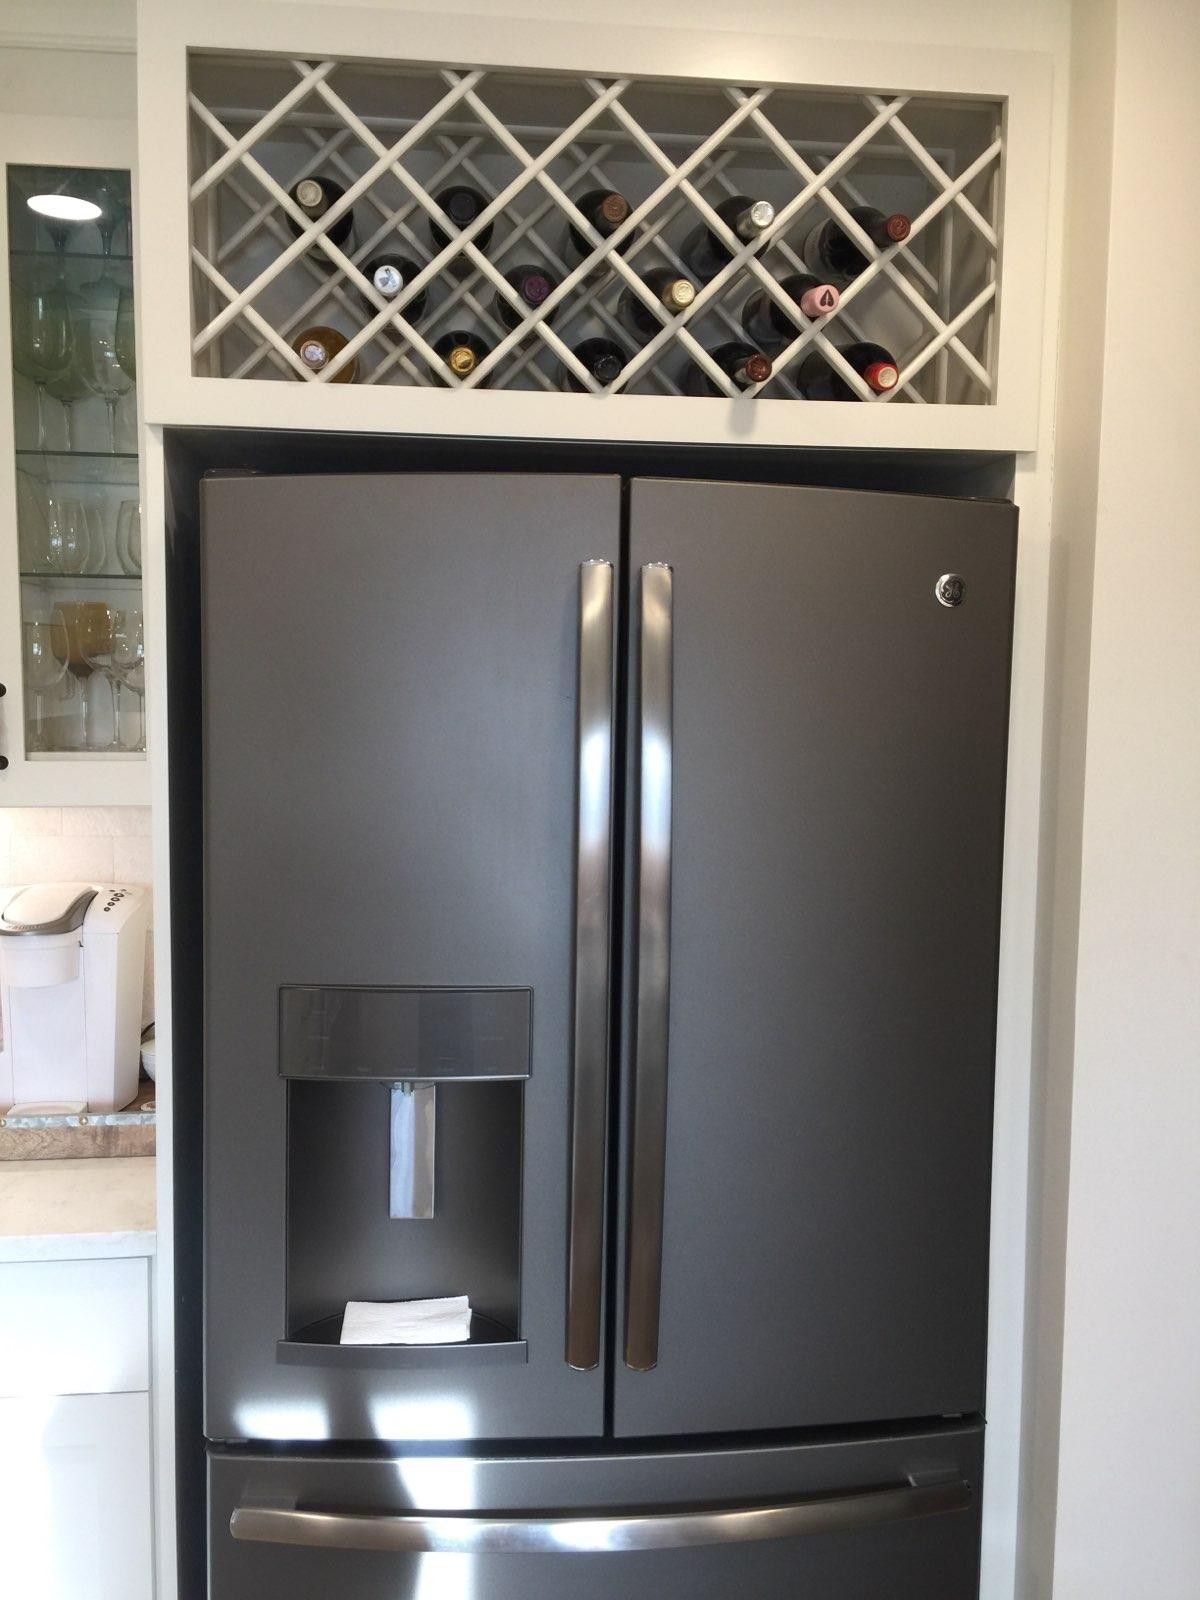 Fridge surround (With images) | Refrigerator cabinet ...